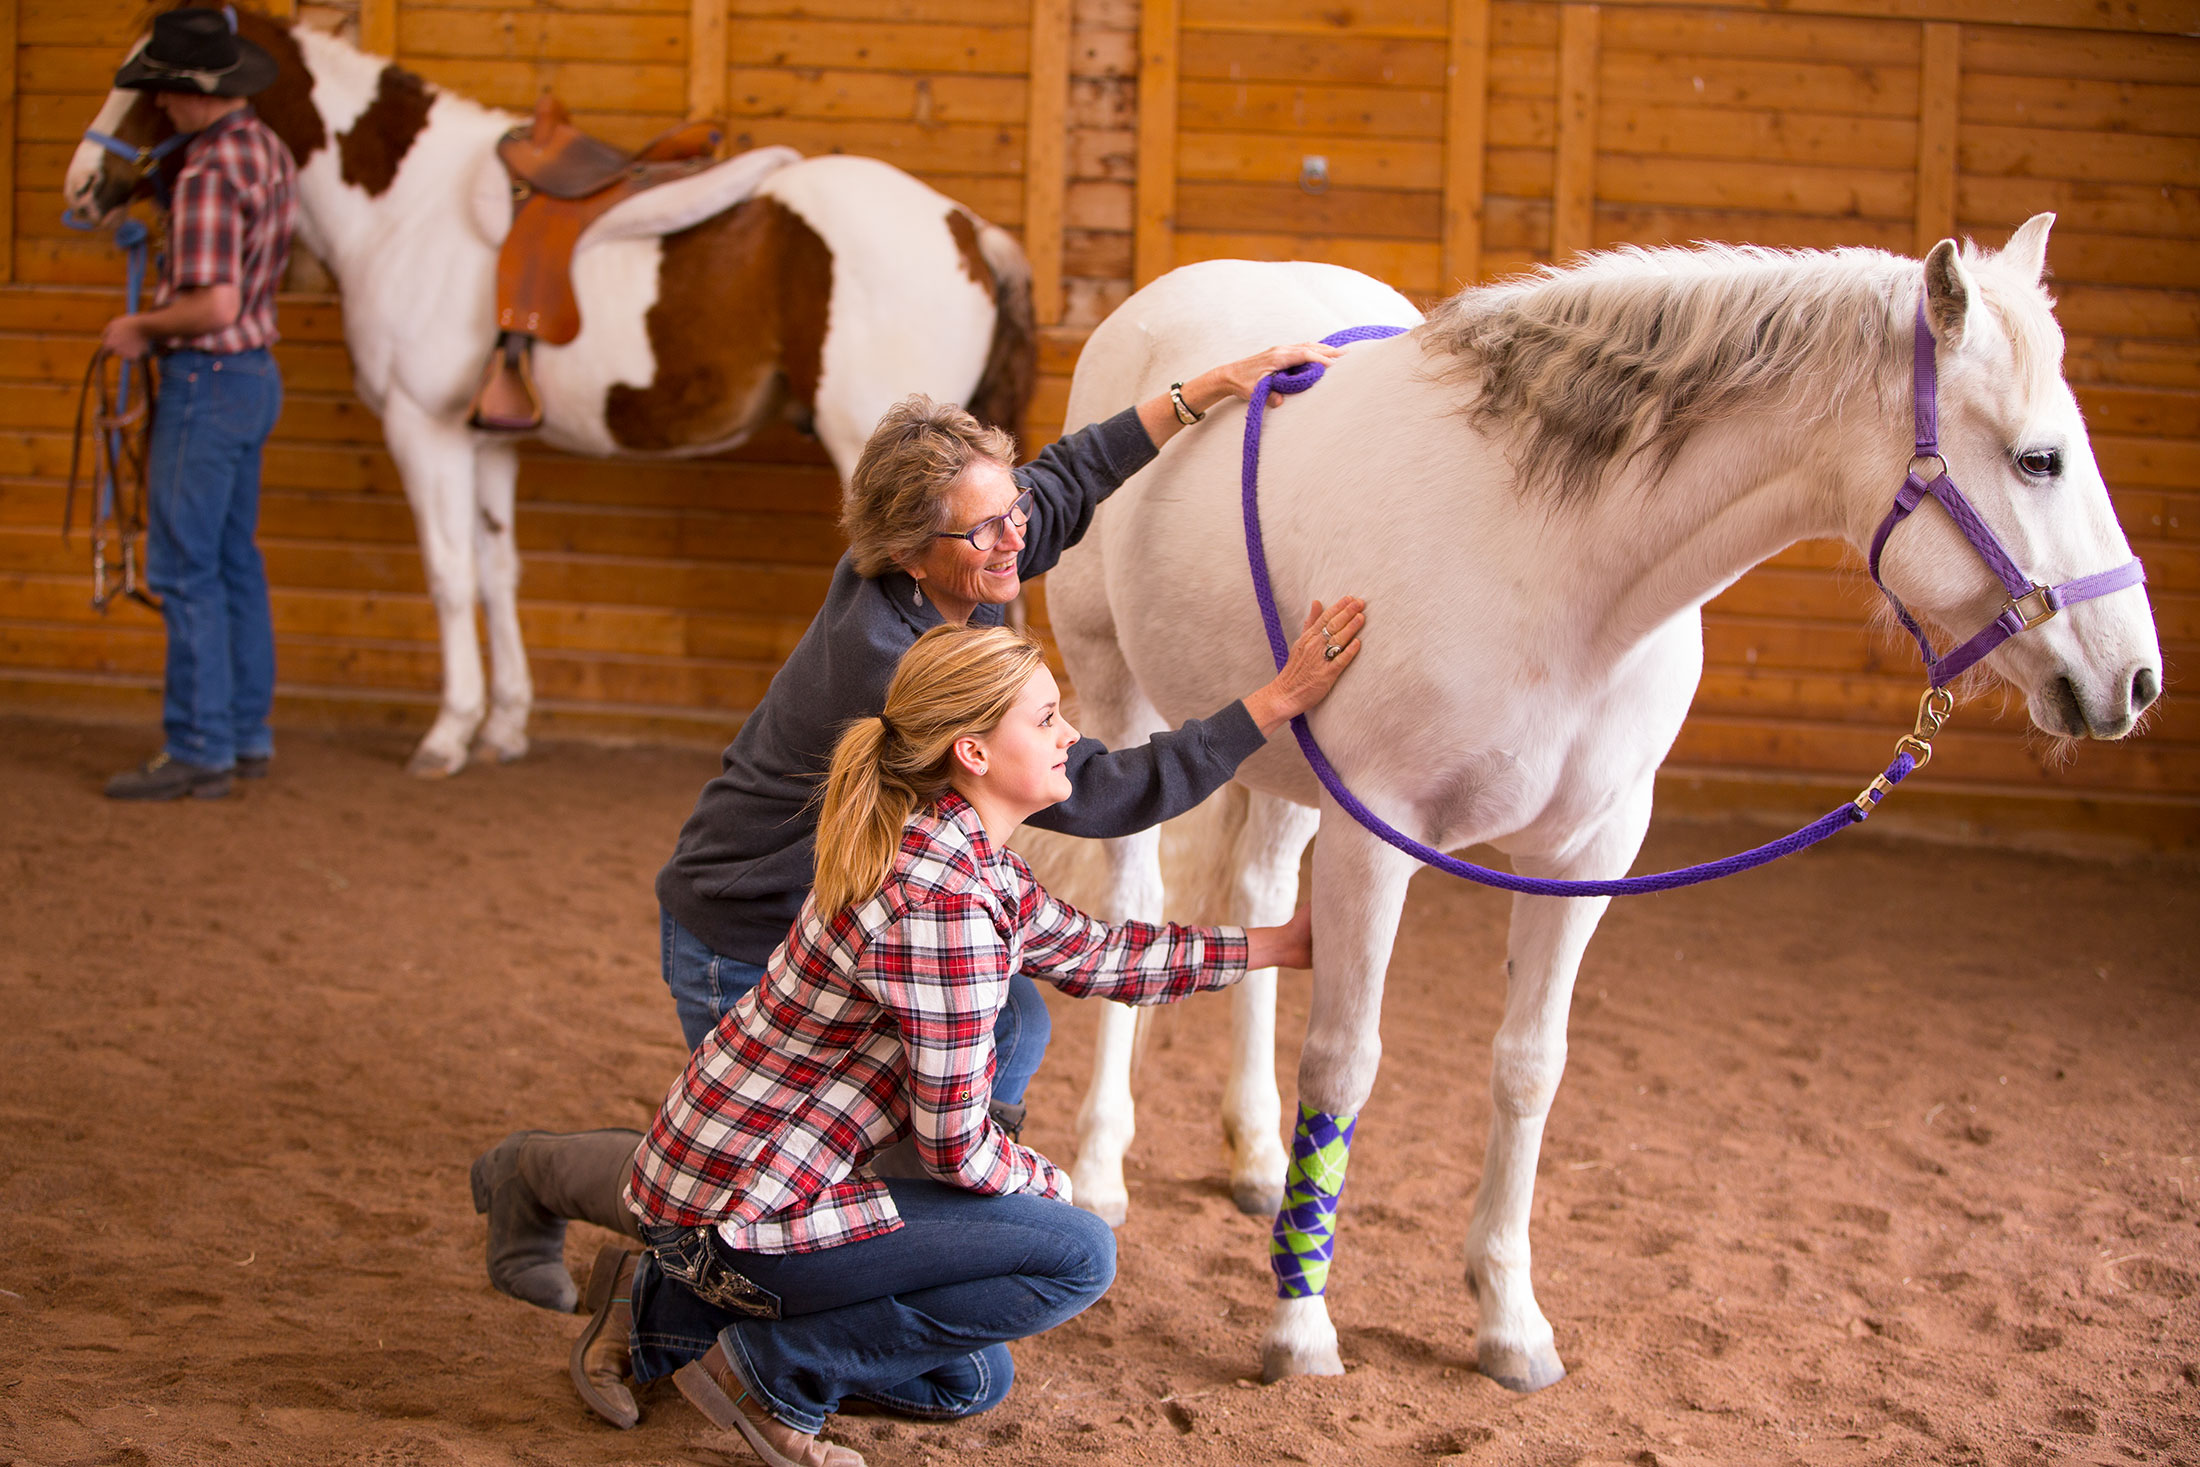 Maria Suthers and Hanna Roberts working with a horse